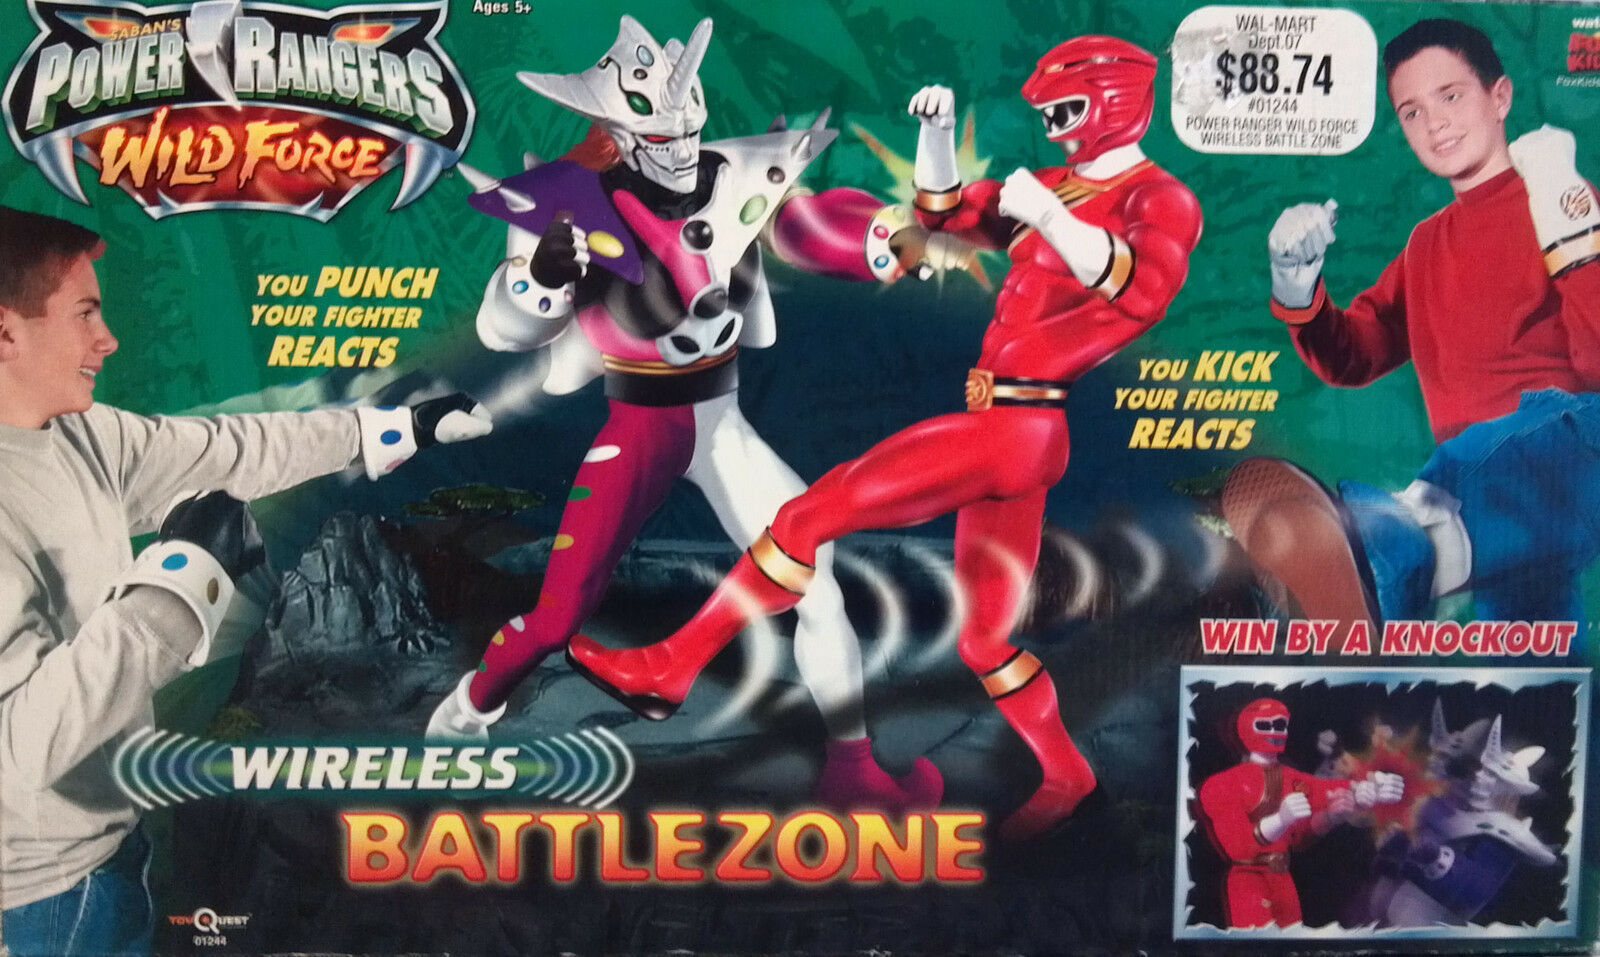 POWER RANGERS WILD FORCE WIRELESS BATTLEZONE (NEW SEALED)